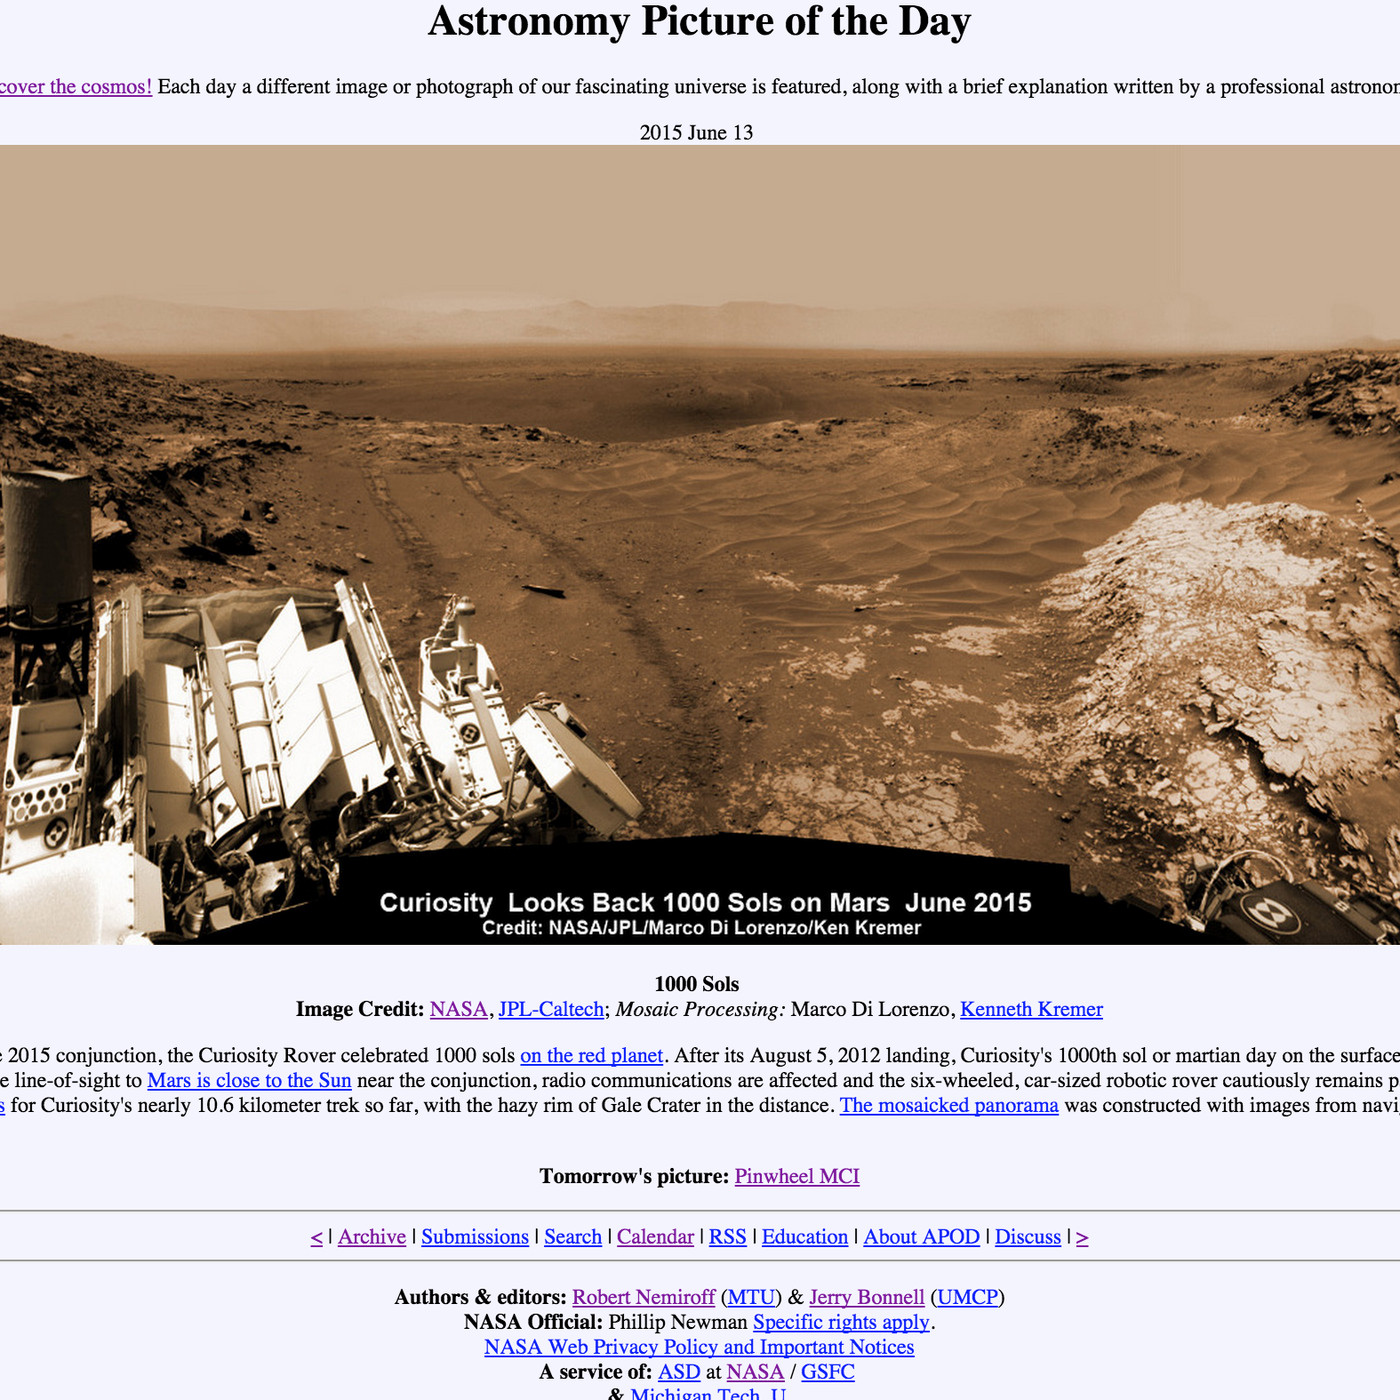 theverge.com - Sean O'Kane - 20 years of space photos: an oral history of Astronomy Picture of the Day